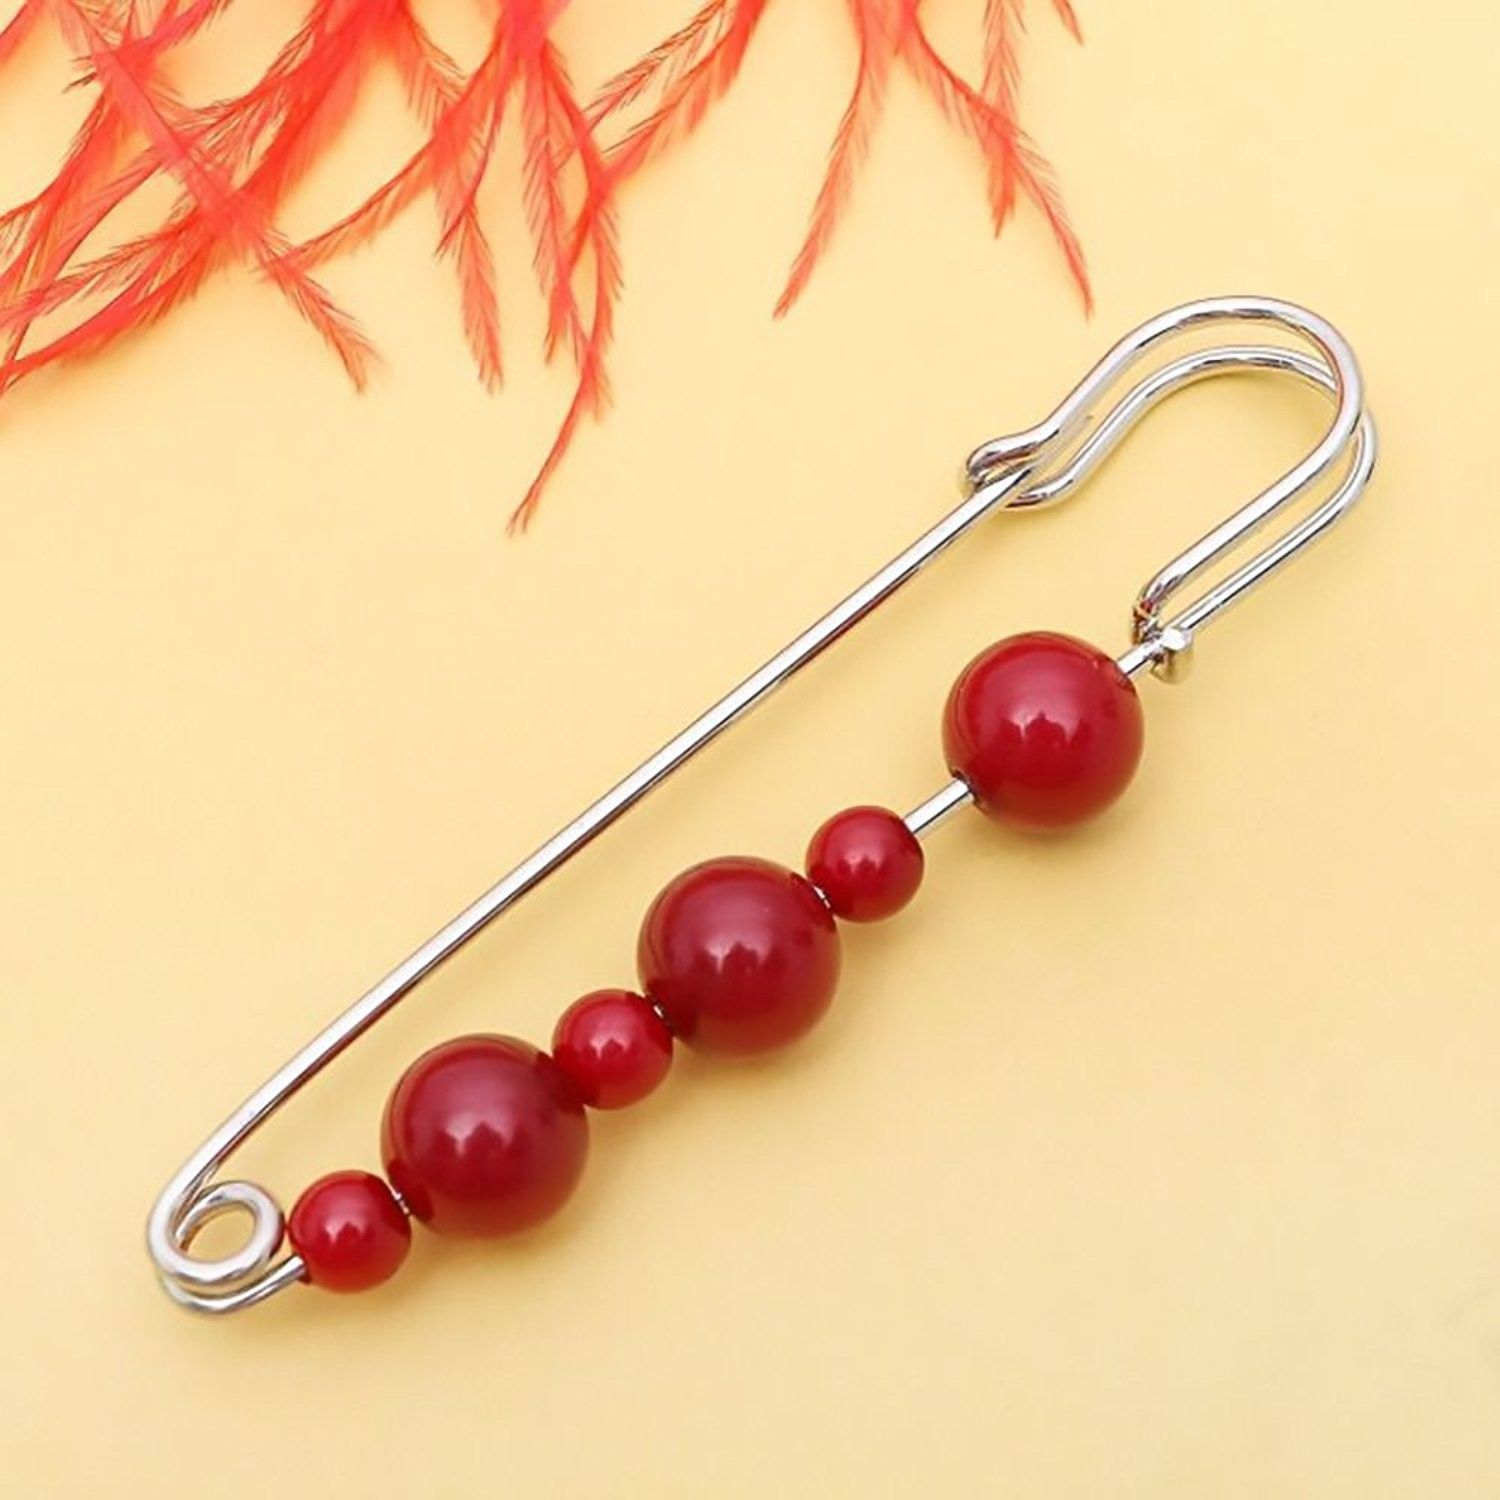 63a01189e Brooches & Pins, Fashion Women Jewelry Multicolored Brooch Safety Pin -  Garnet Silver - CP188NH2D49 #Brooches #Pins #Accessories #summeroutfits #  ...